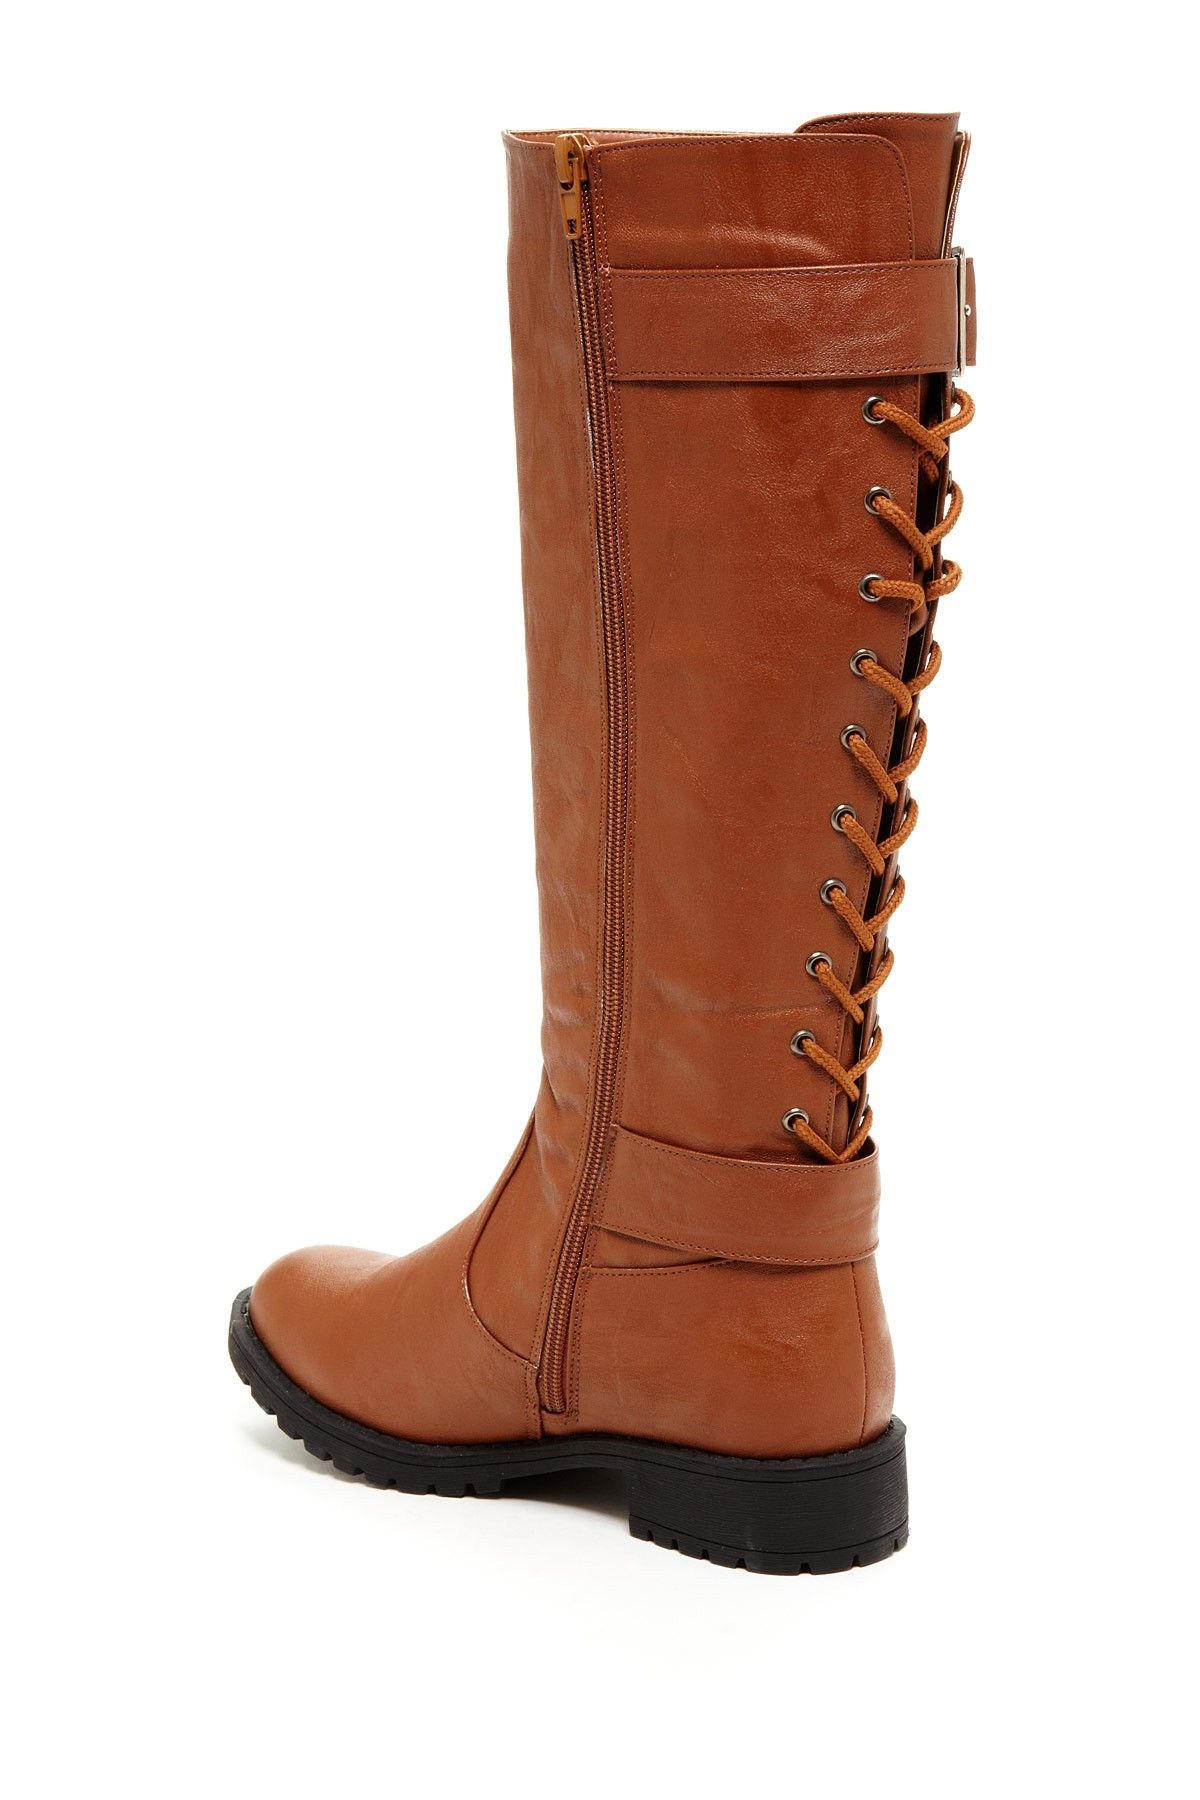 Lace Up Back Riding Boot On Hautelook Shoes Pinterest